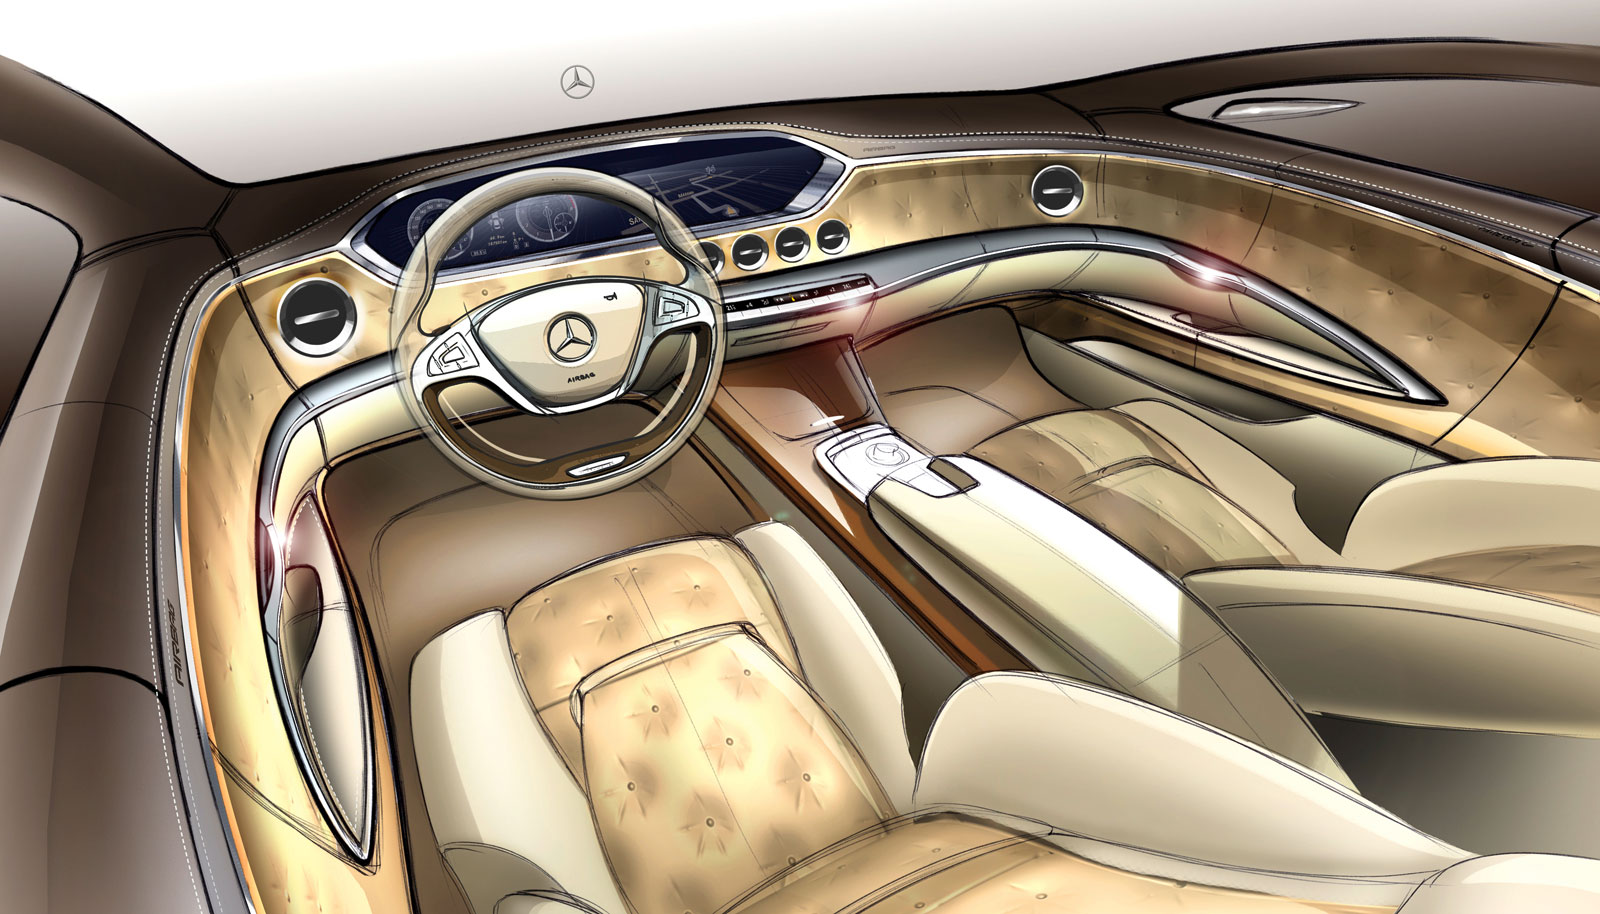 2014 mercedes benz s class interior design sketch car. Black Bedroom Furniture Sets. Home Design Ideas